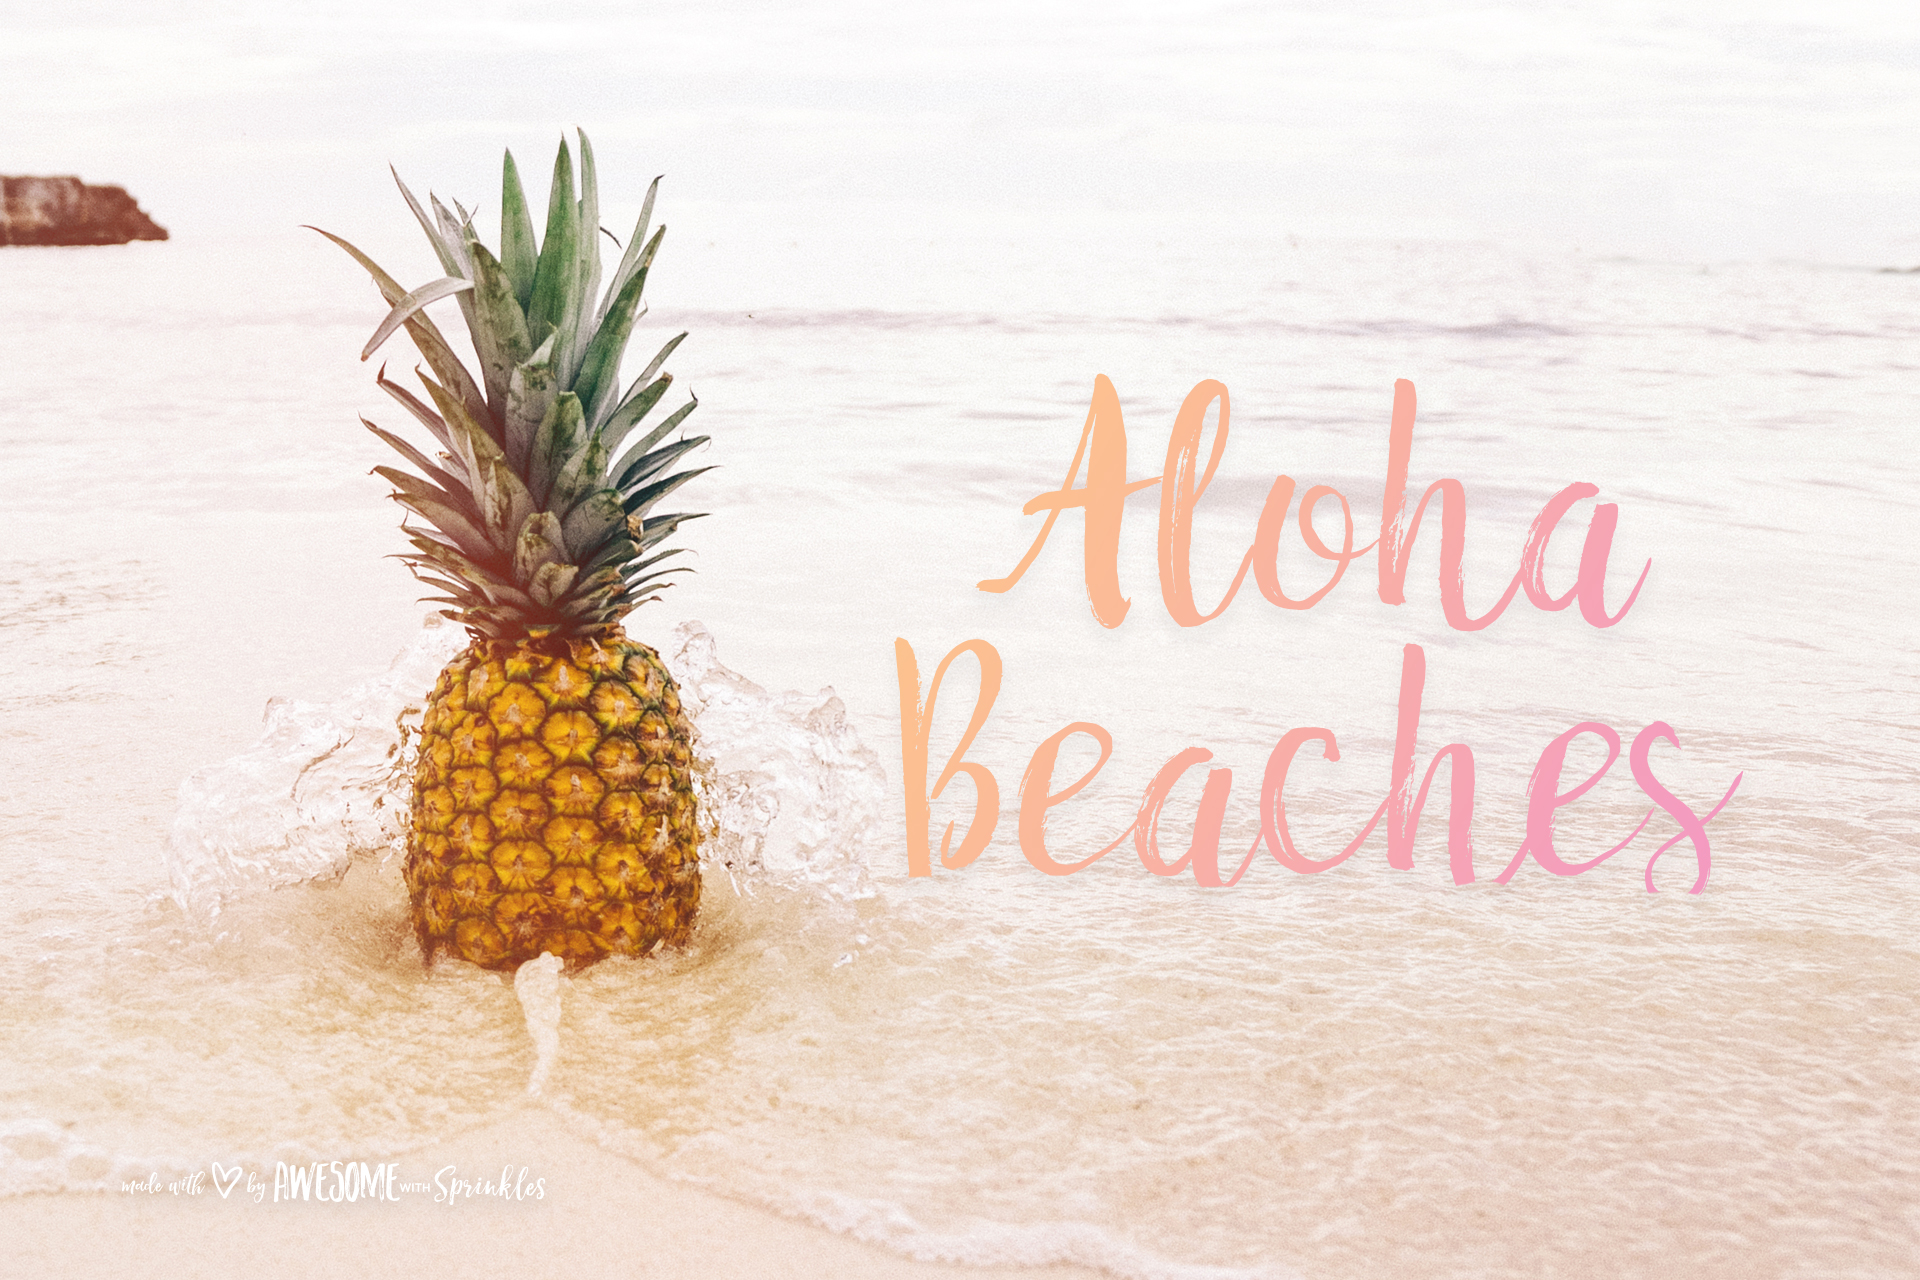 Posiquotes} Hello Summer - Awesome with Sprinkles for Pineapple Wallpaper Beach  269ane